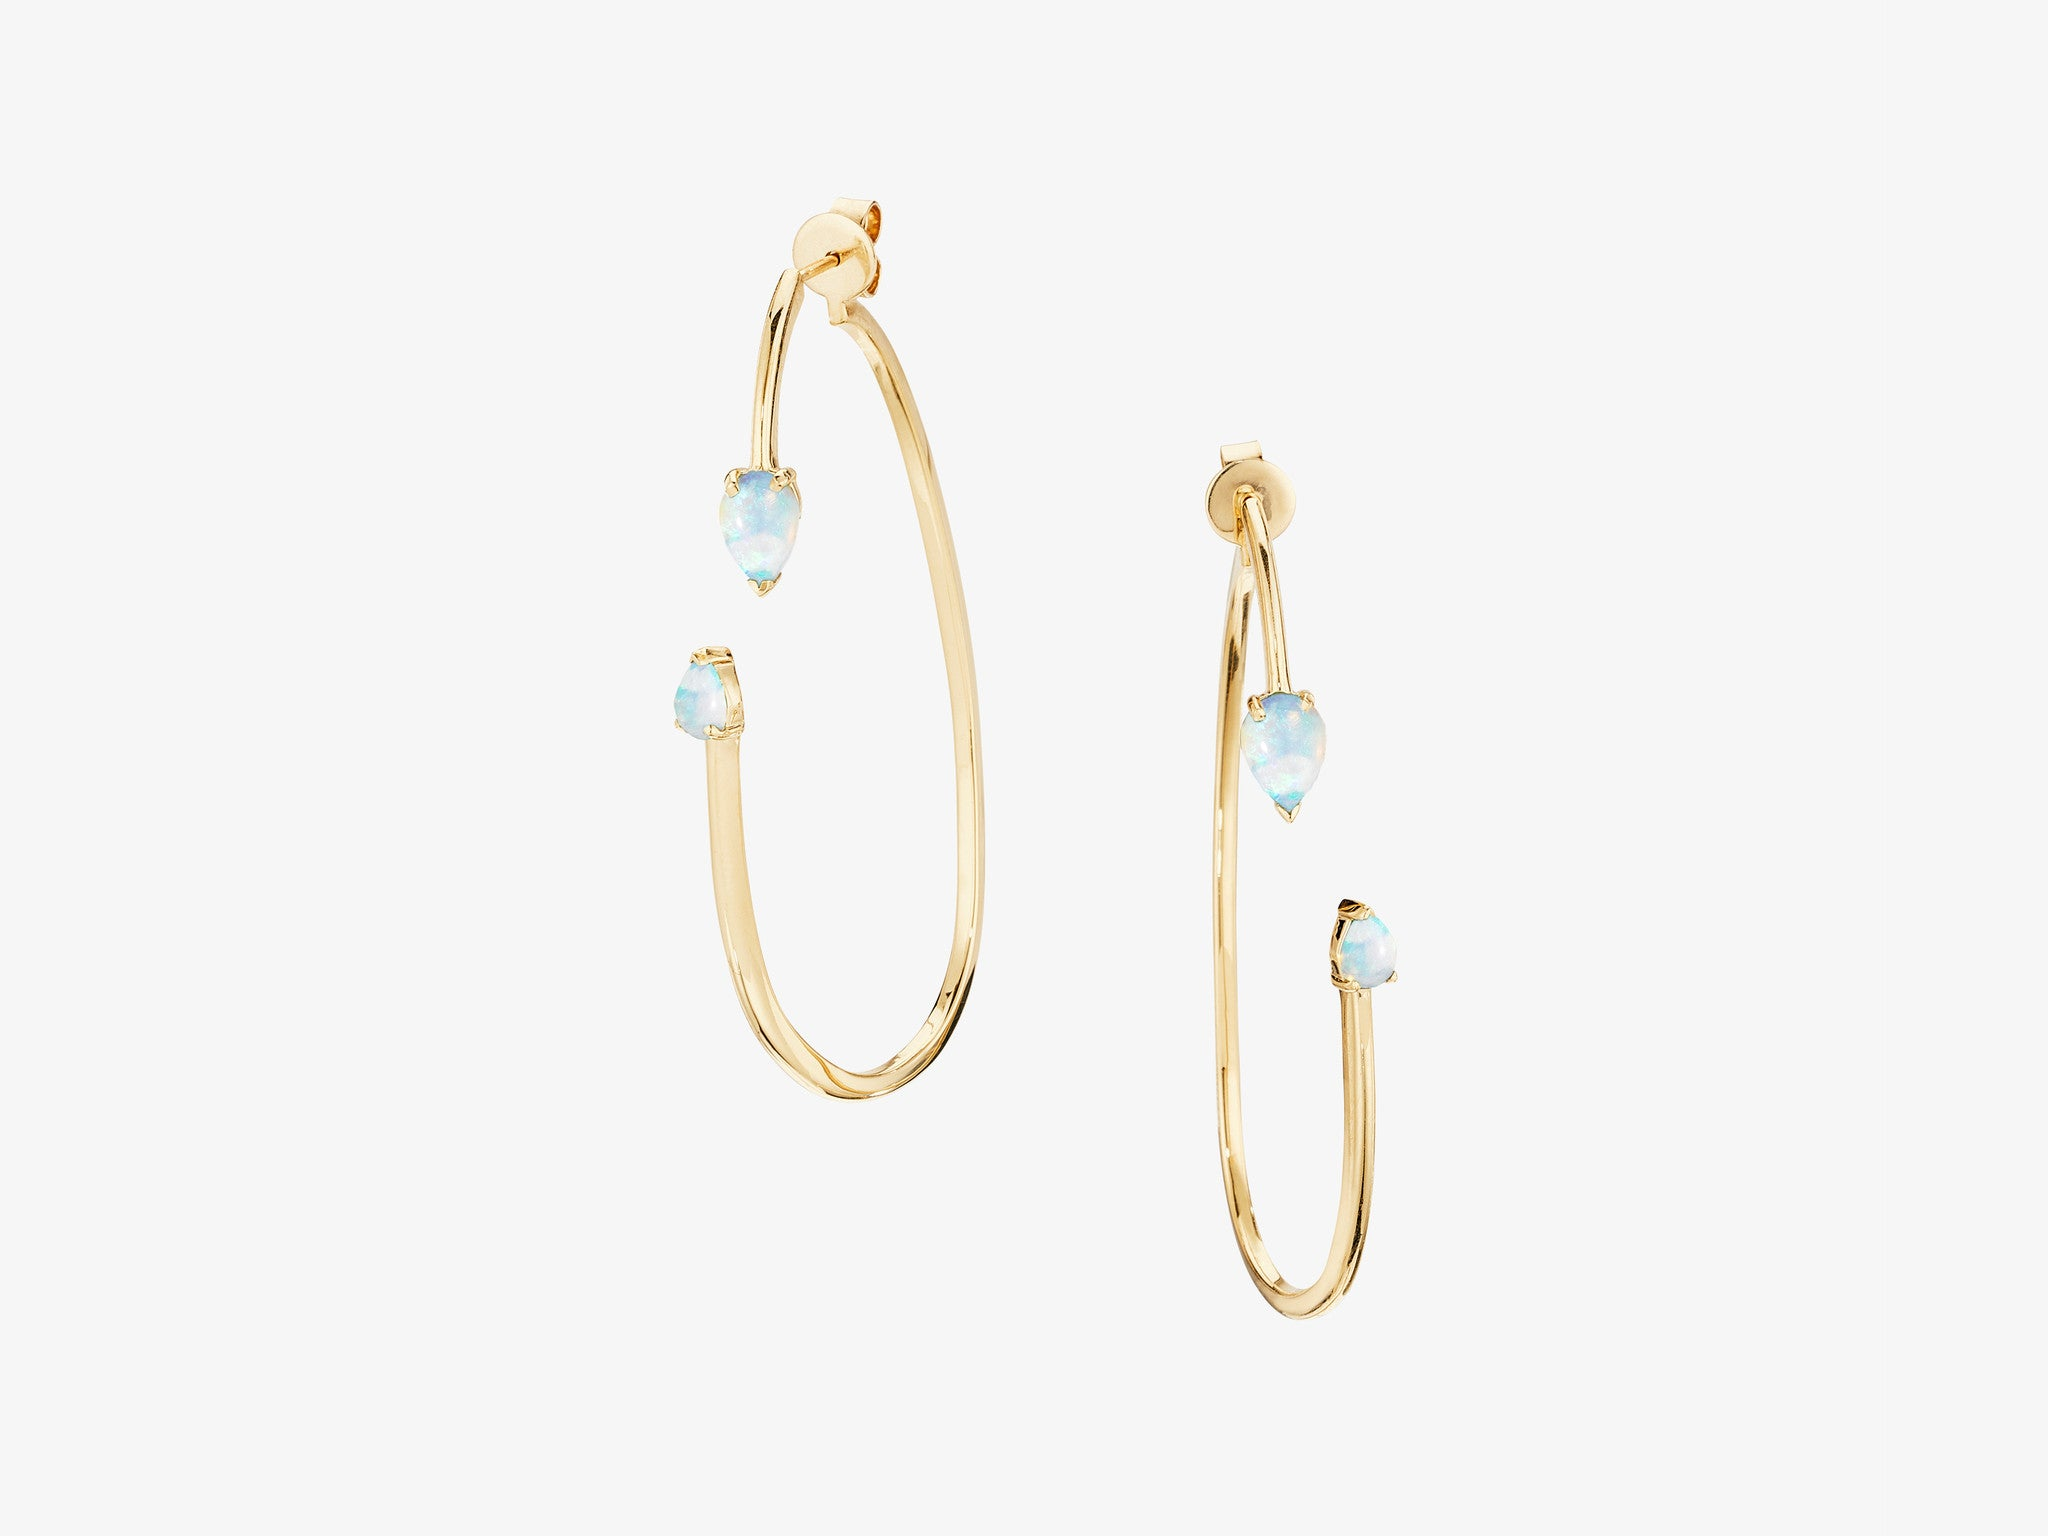 Open Oval Two Part Hoop Earrings with Rose Cut Stone Details